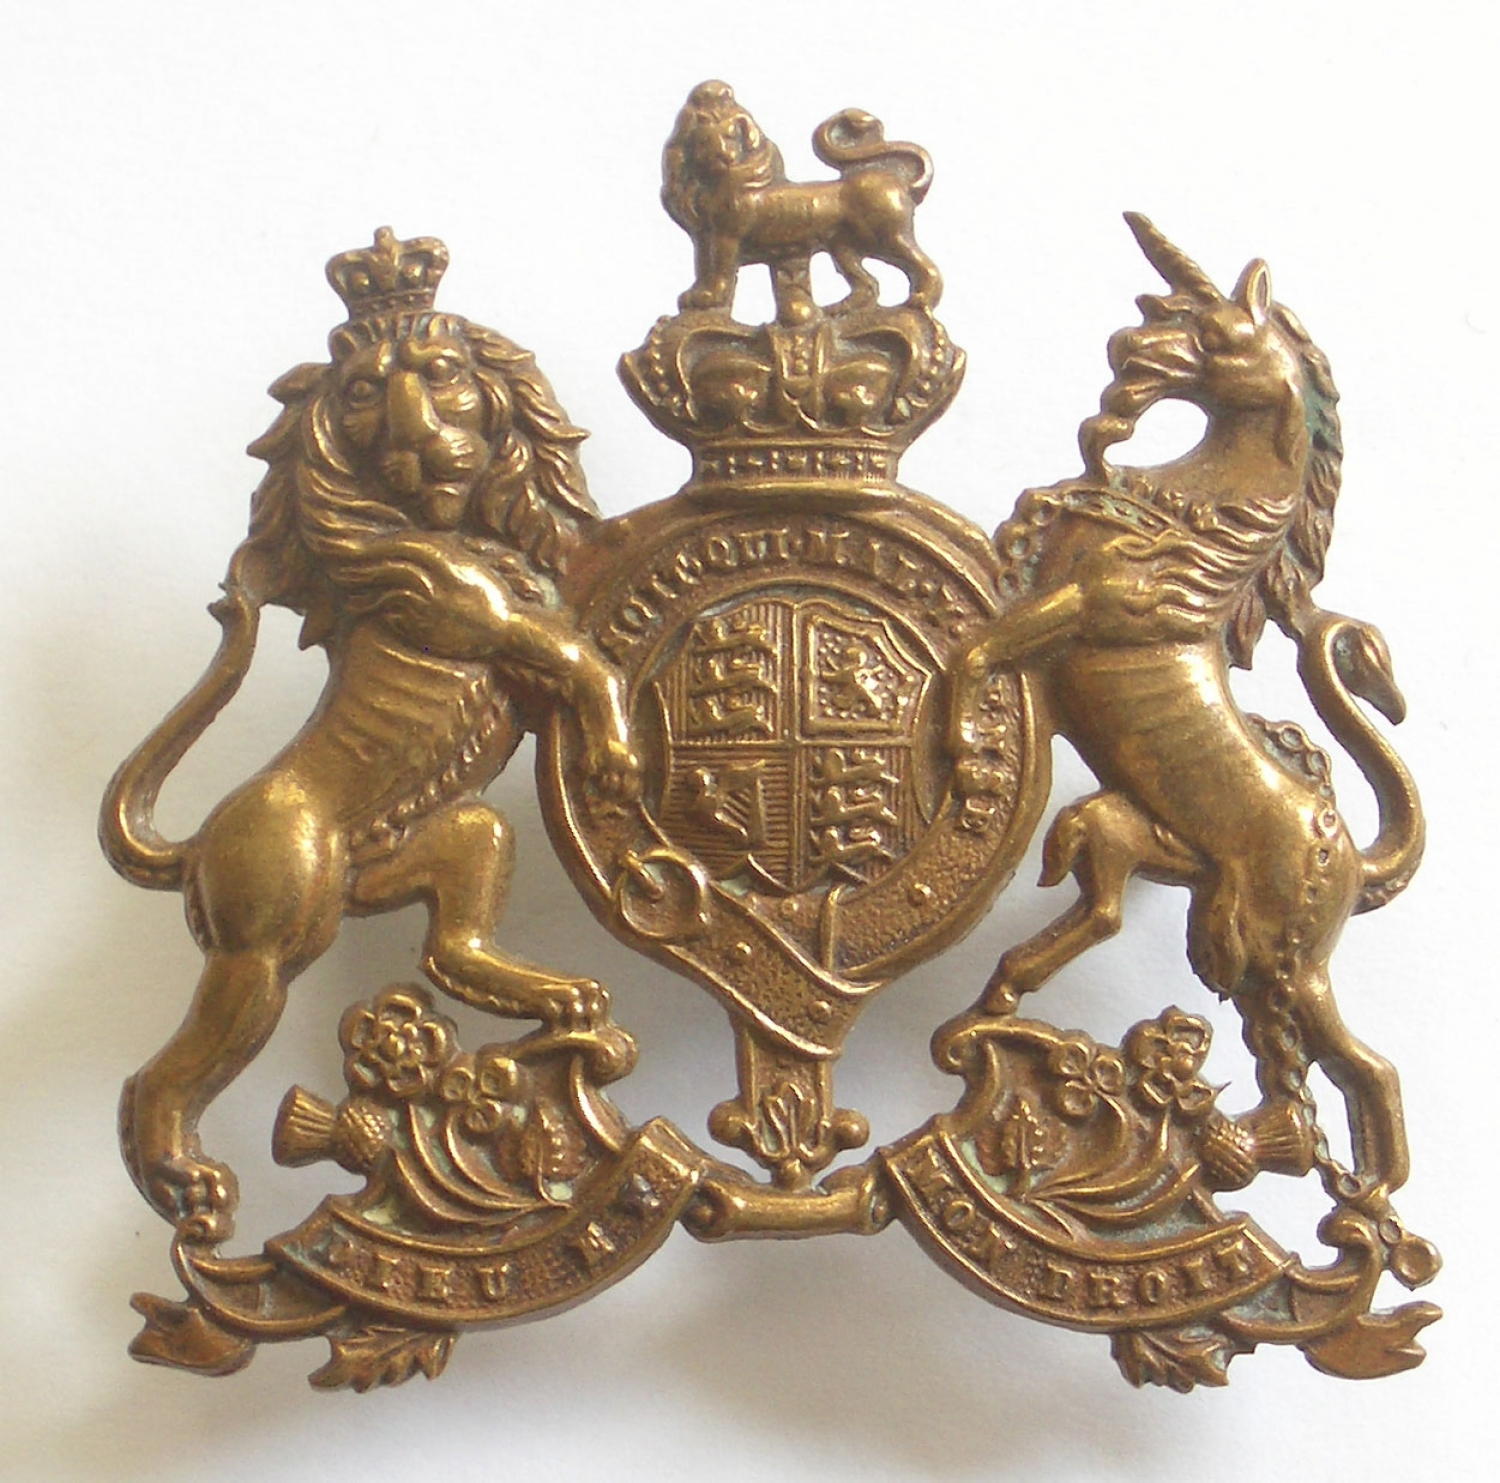 R Home Counties Reserve Regiment badge